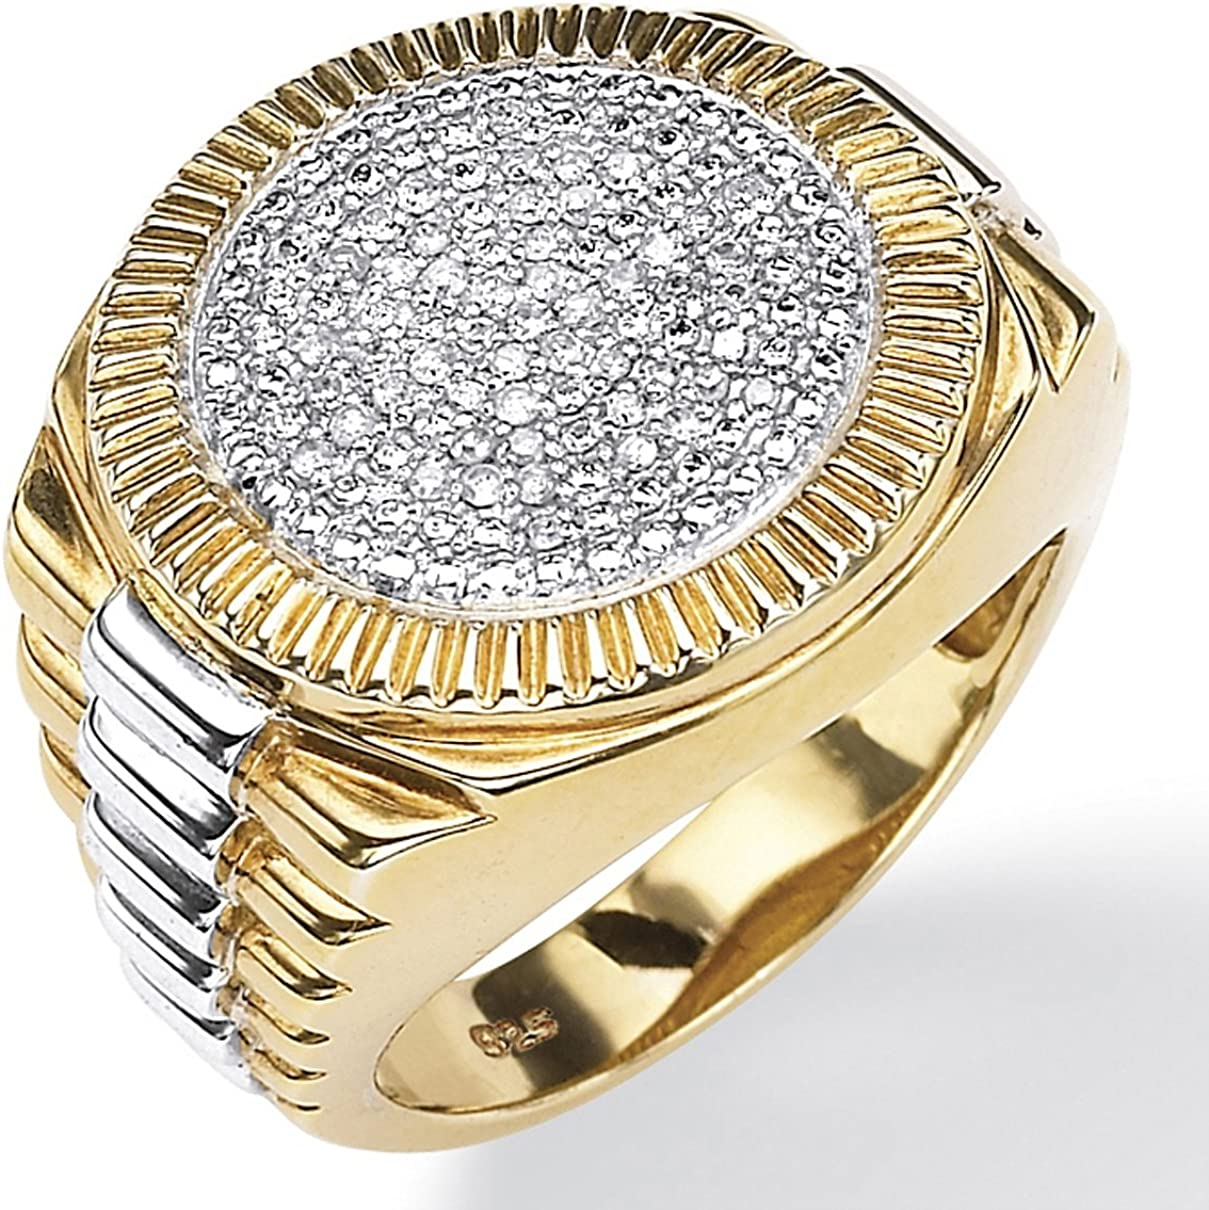 Men's 18K Yellow Gold over Sterling Silver Round Genuine Diamond Pave Two Tone Ribbed Ring (1/6 cttw, I Color, I3 Clarit